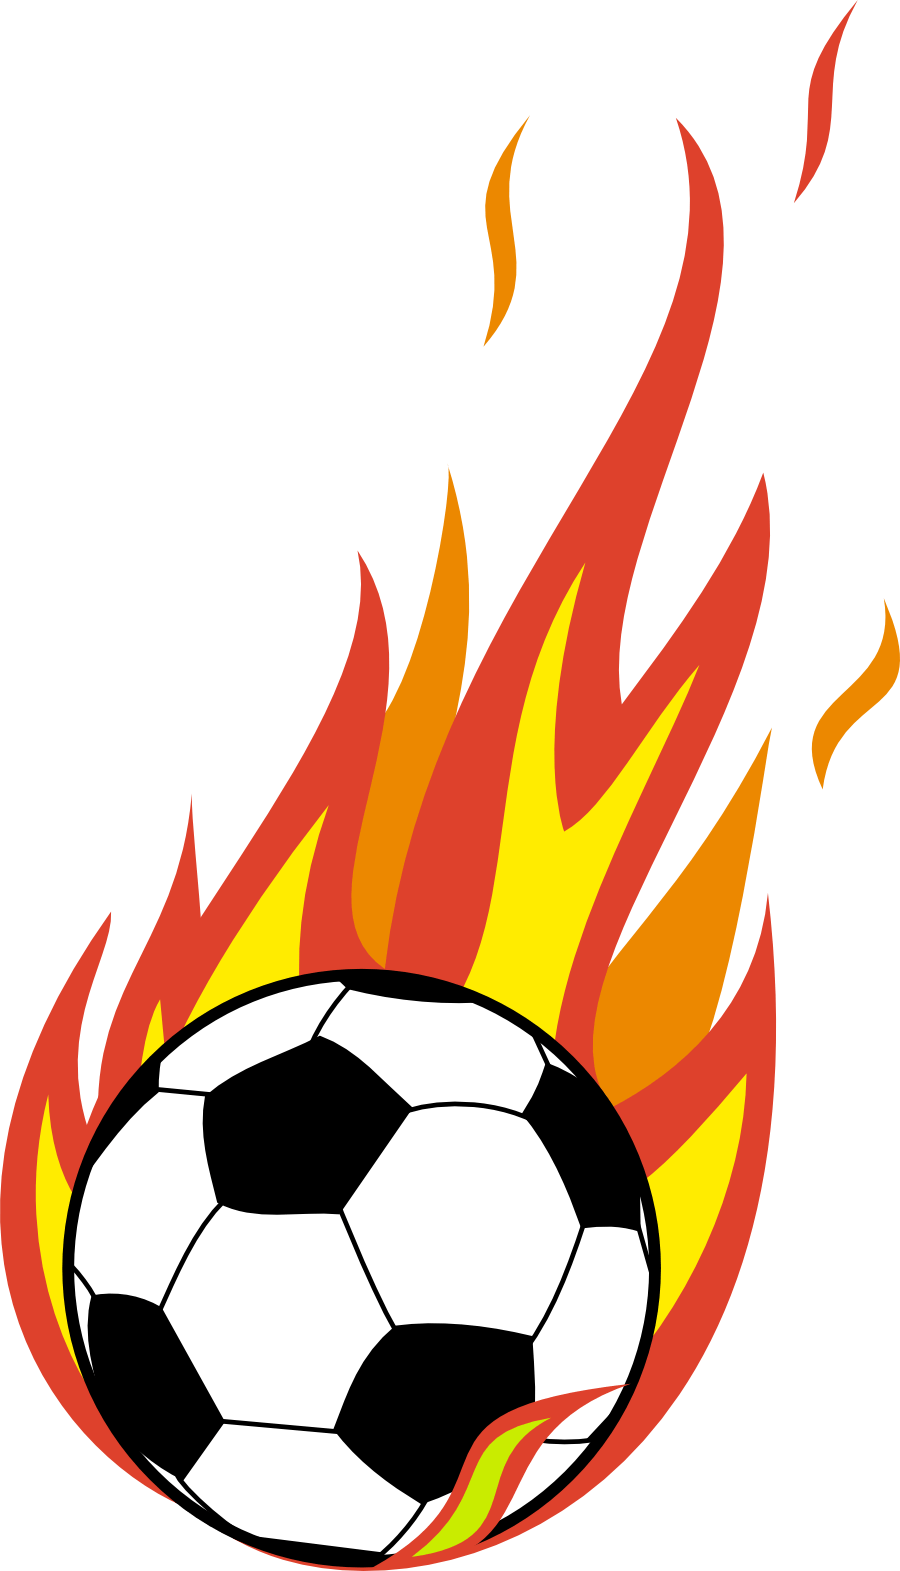 Football on grass clipart banner royalty free library Soccer ball with flames on grass clipart - Hanslodge Cliparts banner royalty free library